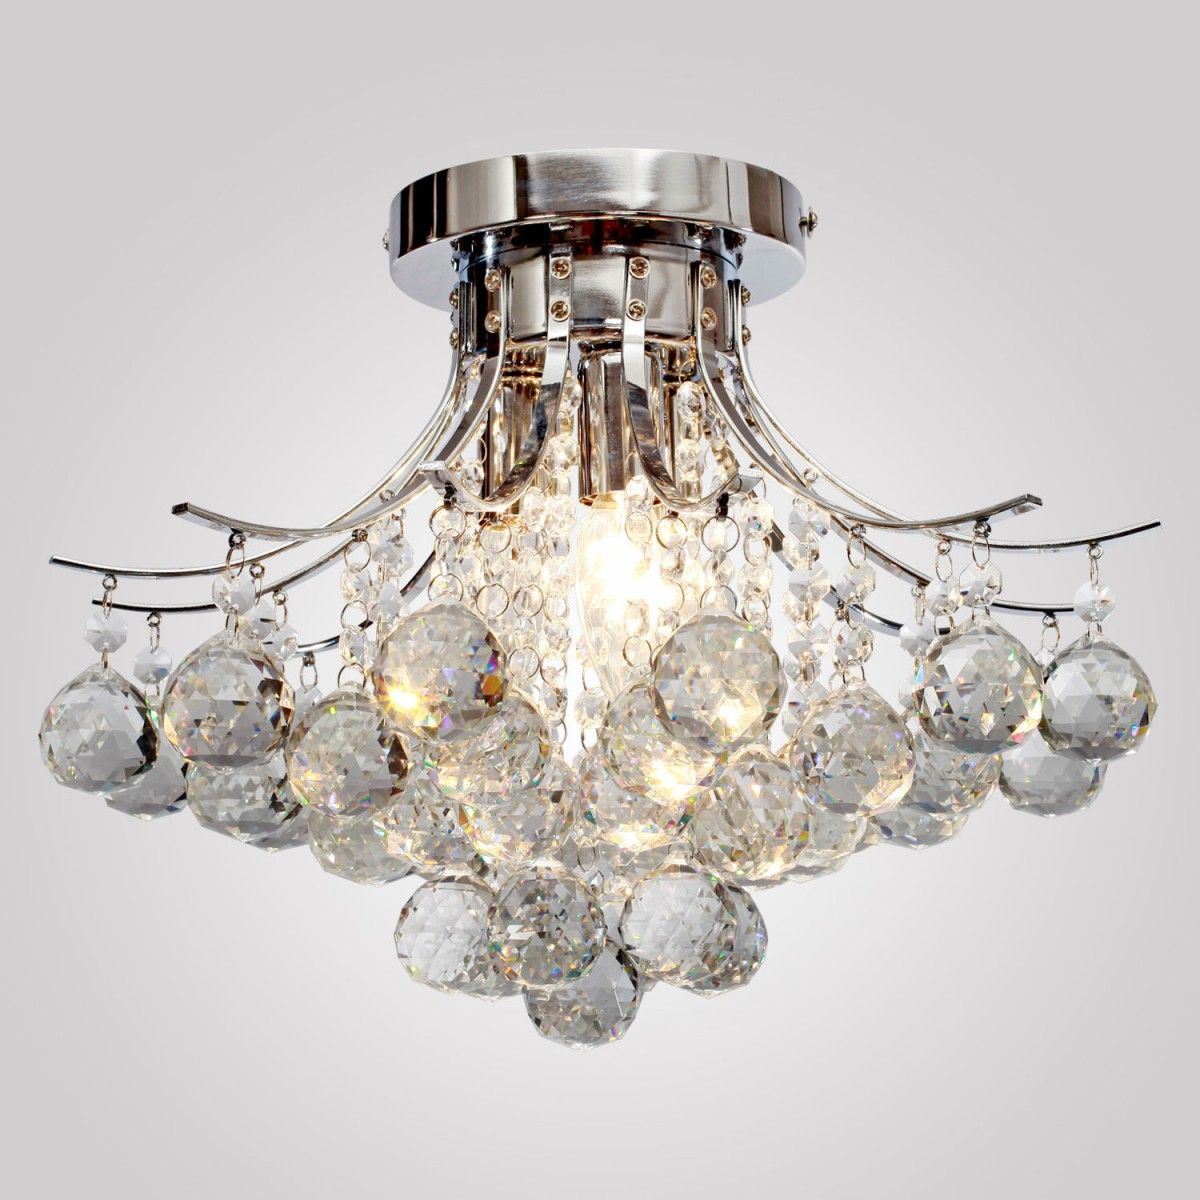 elegant ceiling fans. Great Elegant Ceiling Fans With Lights 59 On Murano Pendant